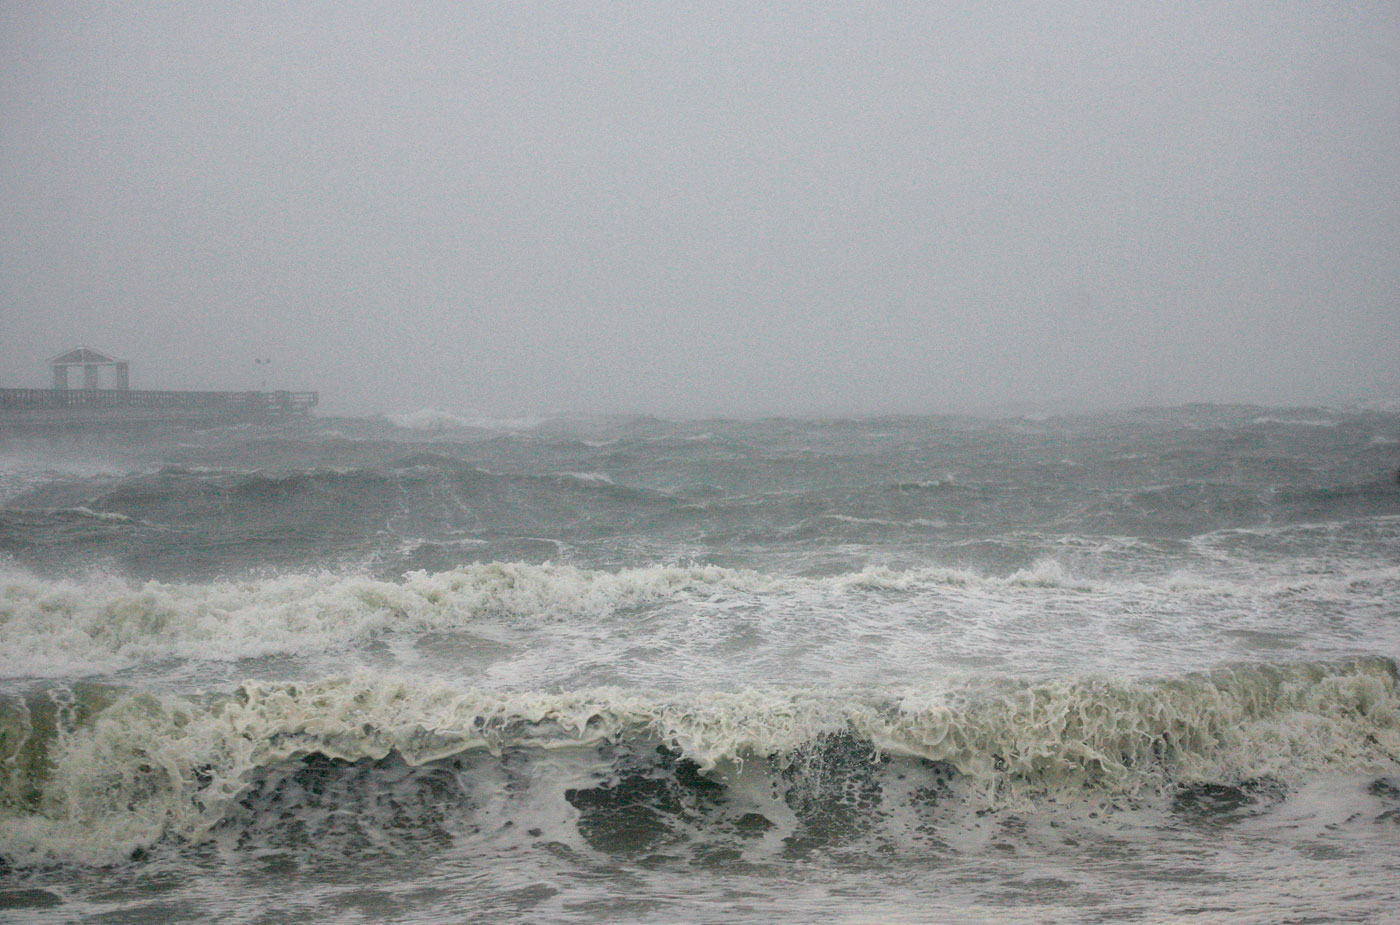 Waves from Hurricane Irene crash on the Ocean View Fishing Pier in Norfolk, Va., on Saturday, August 27, 2011.